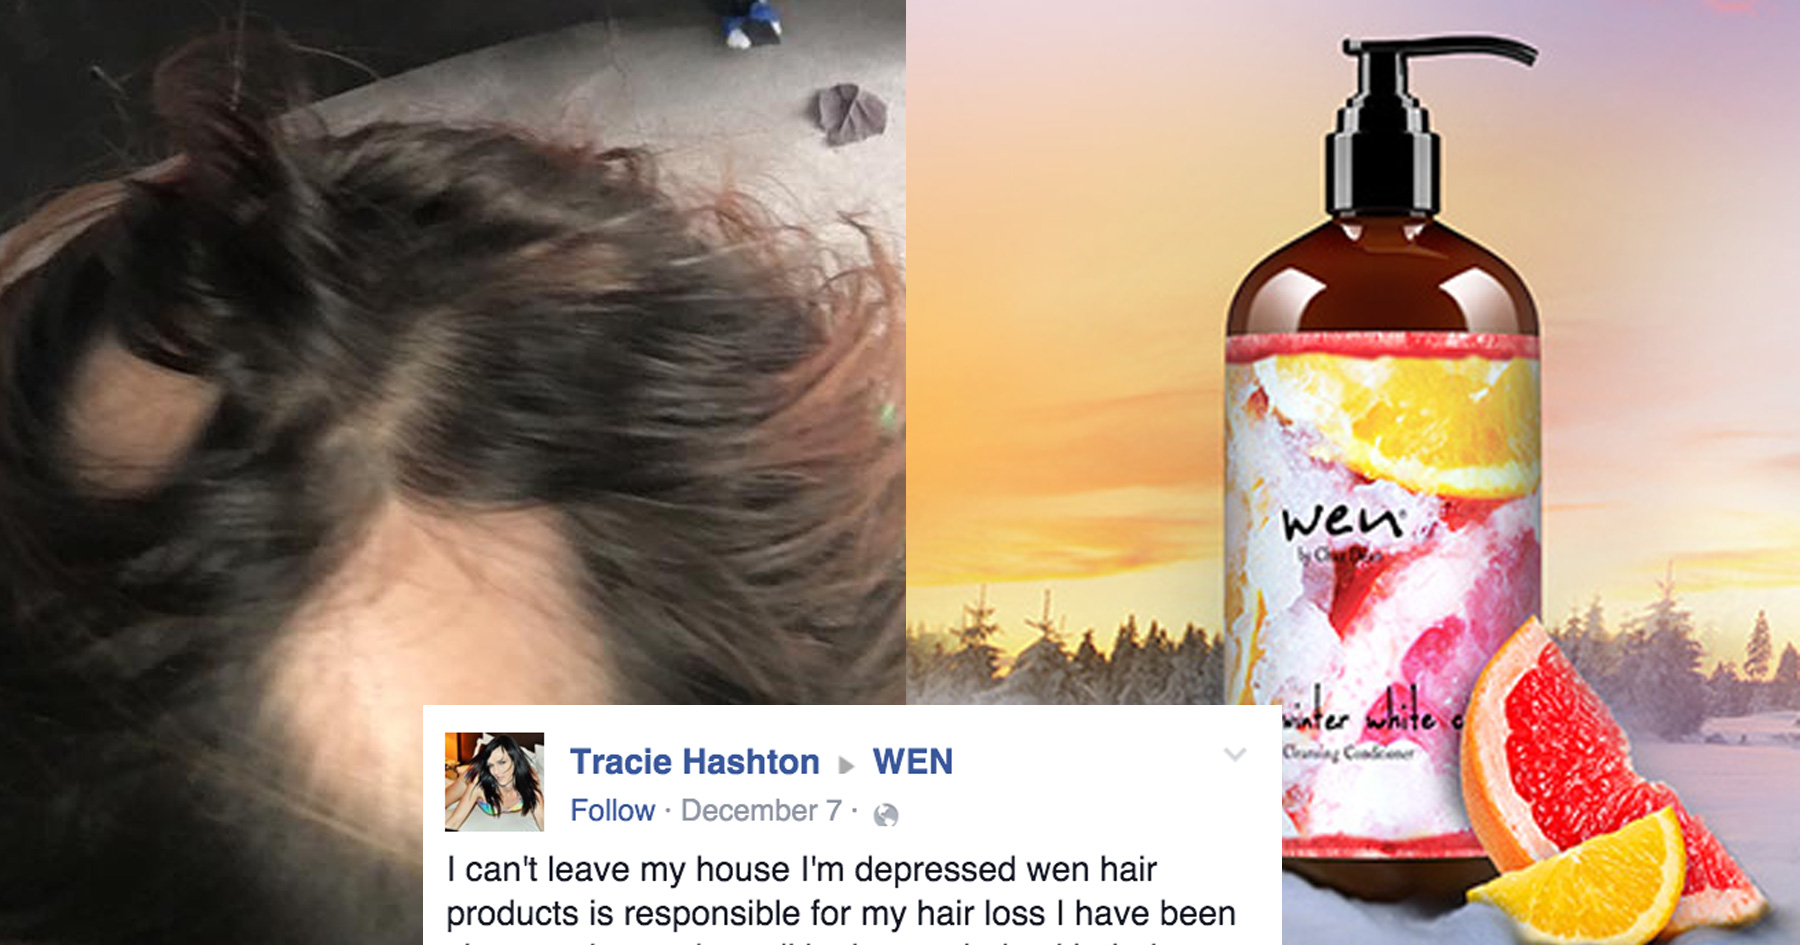 Wen Shampoo And Conditioner >> Chaz Dean's WEN Haircare Faces Major Lawsuit - ATTN: